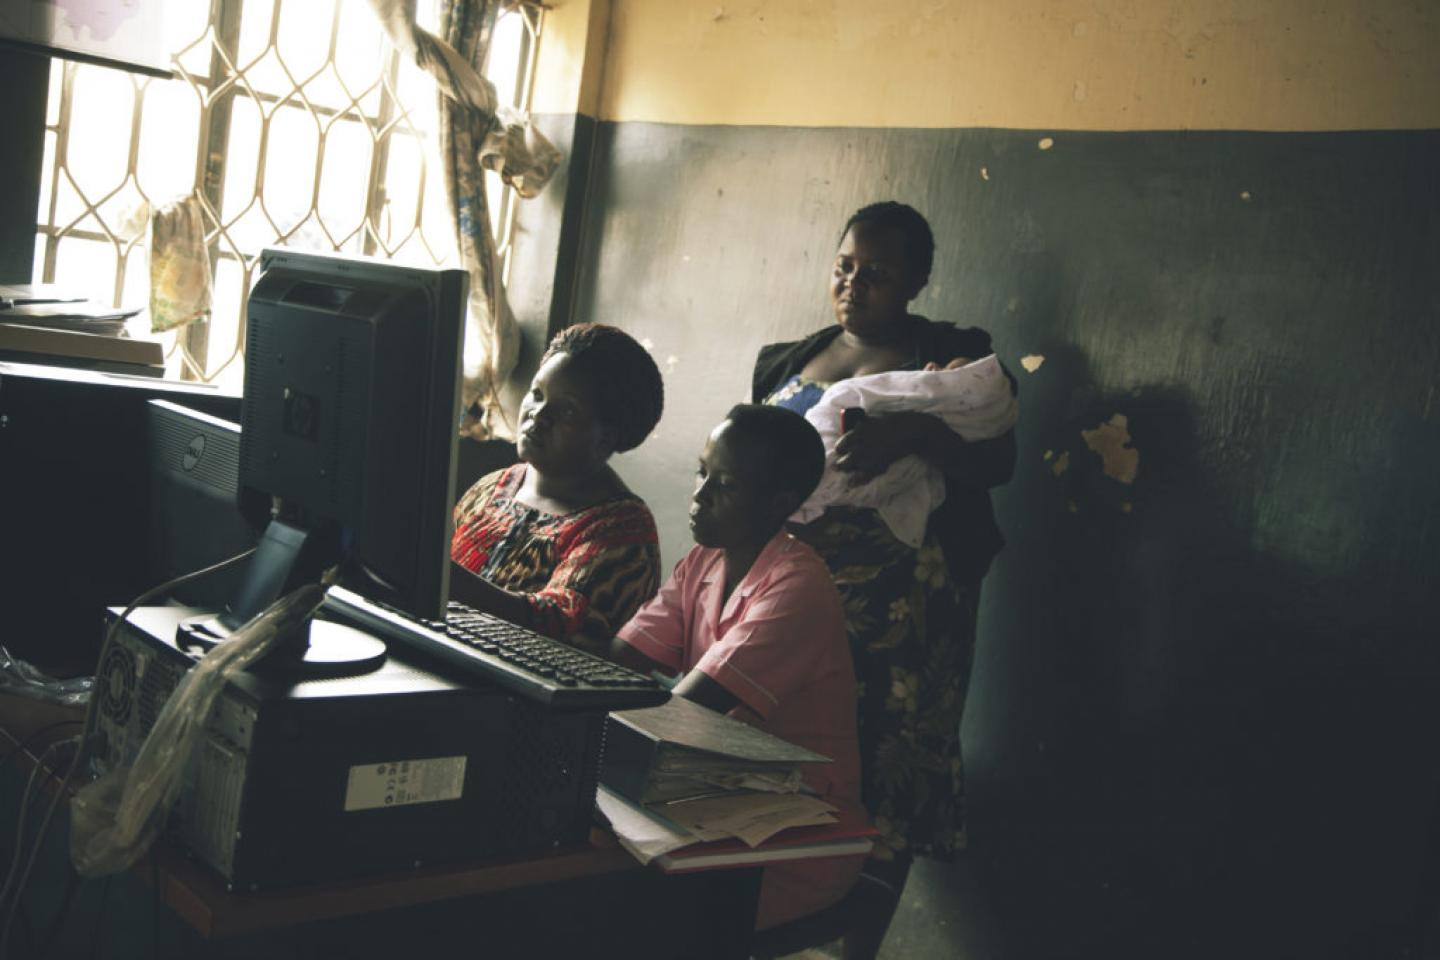 Health workers look at the monitor screens